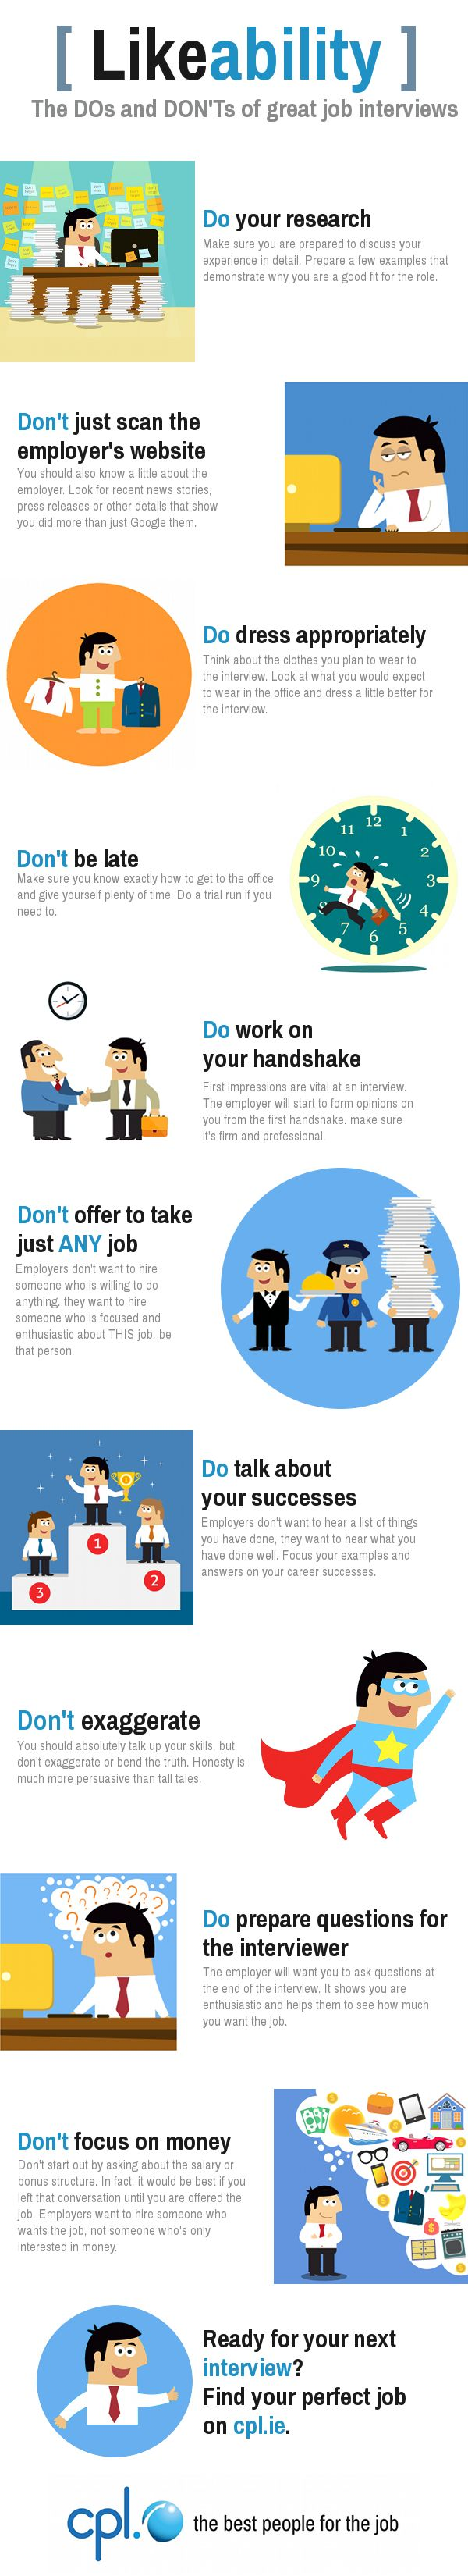 17 images about interview skills tips for the dos and don ts of great job interviews from cpl ie interviewtips